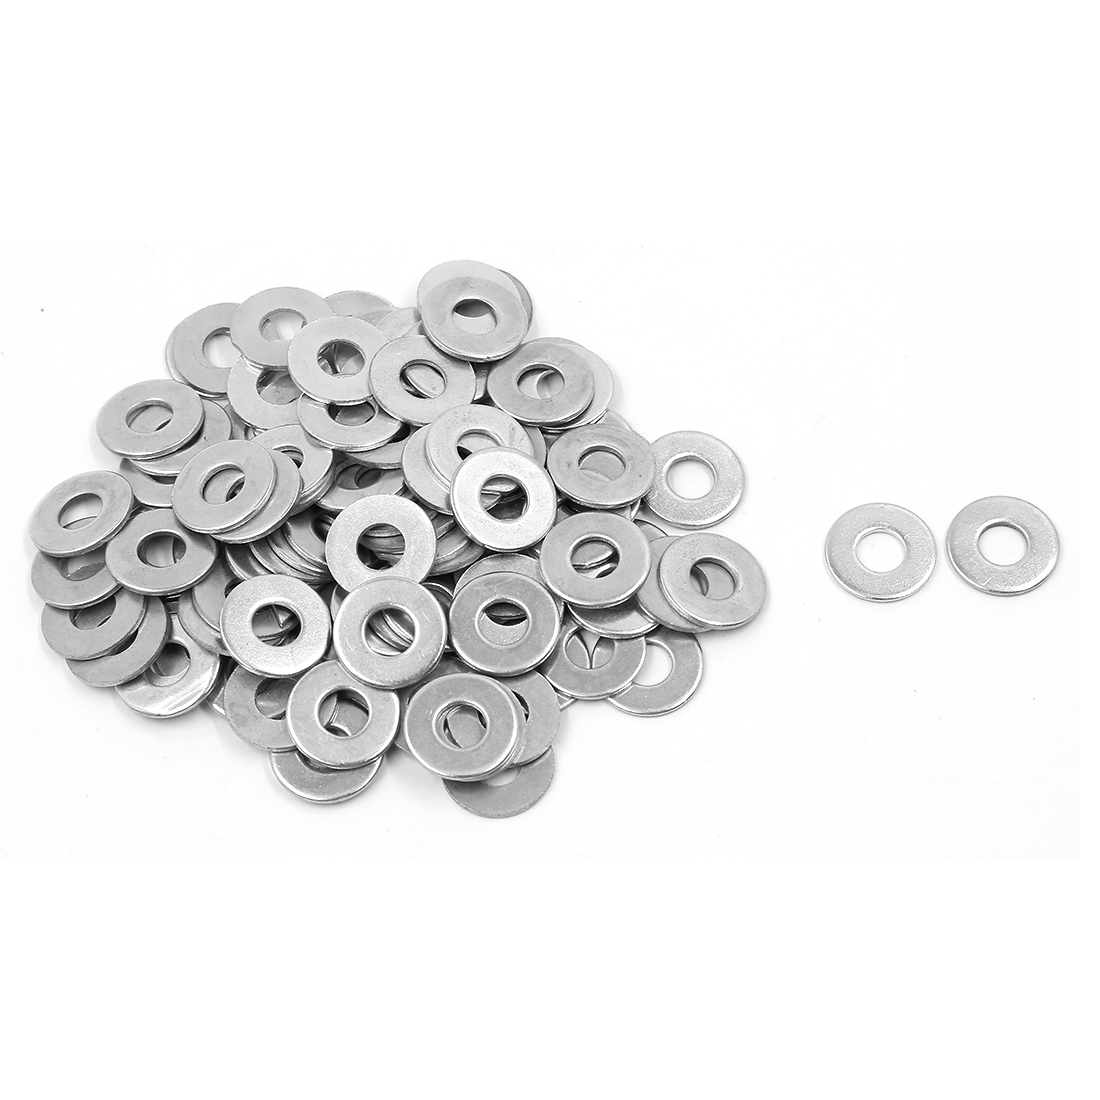 100Pcs M8x20mmx1.5mm Metal Metric Round Flat Washer for Bolt Screw